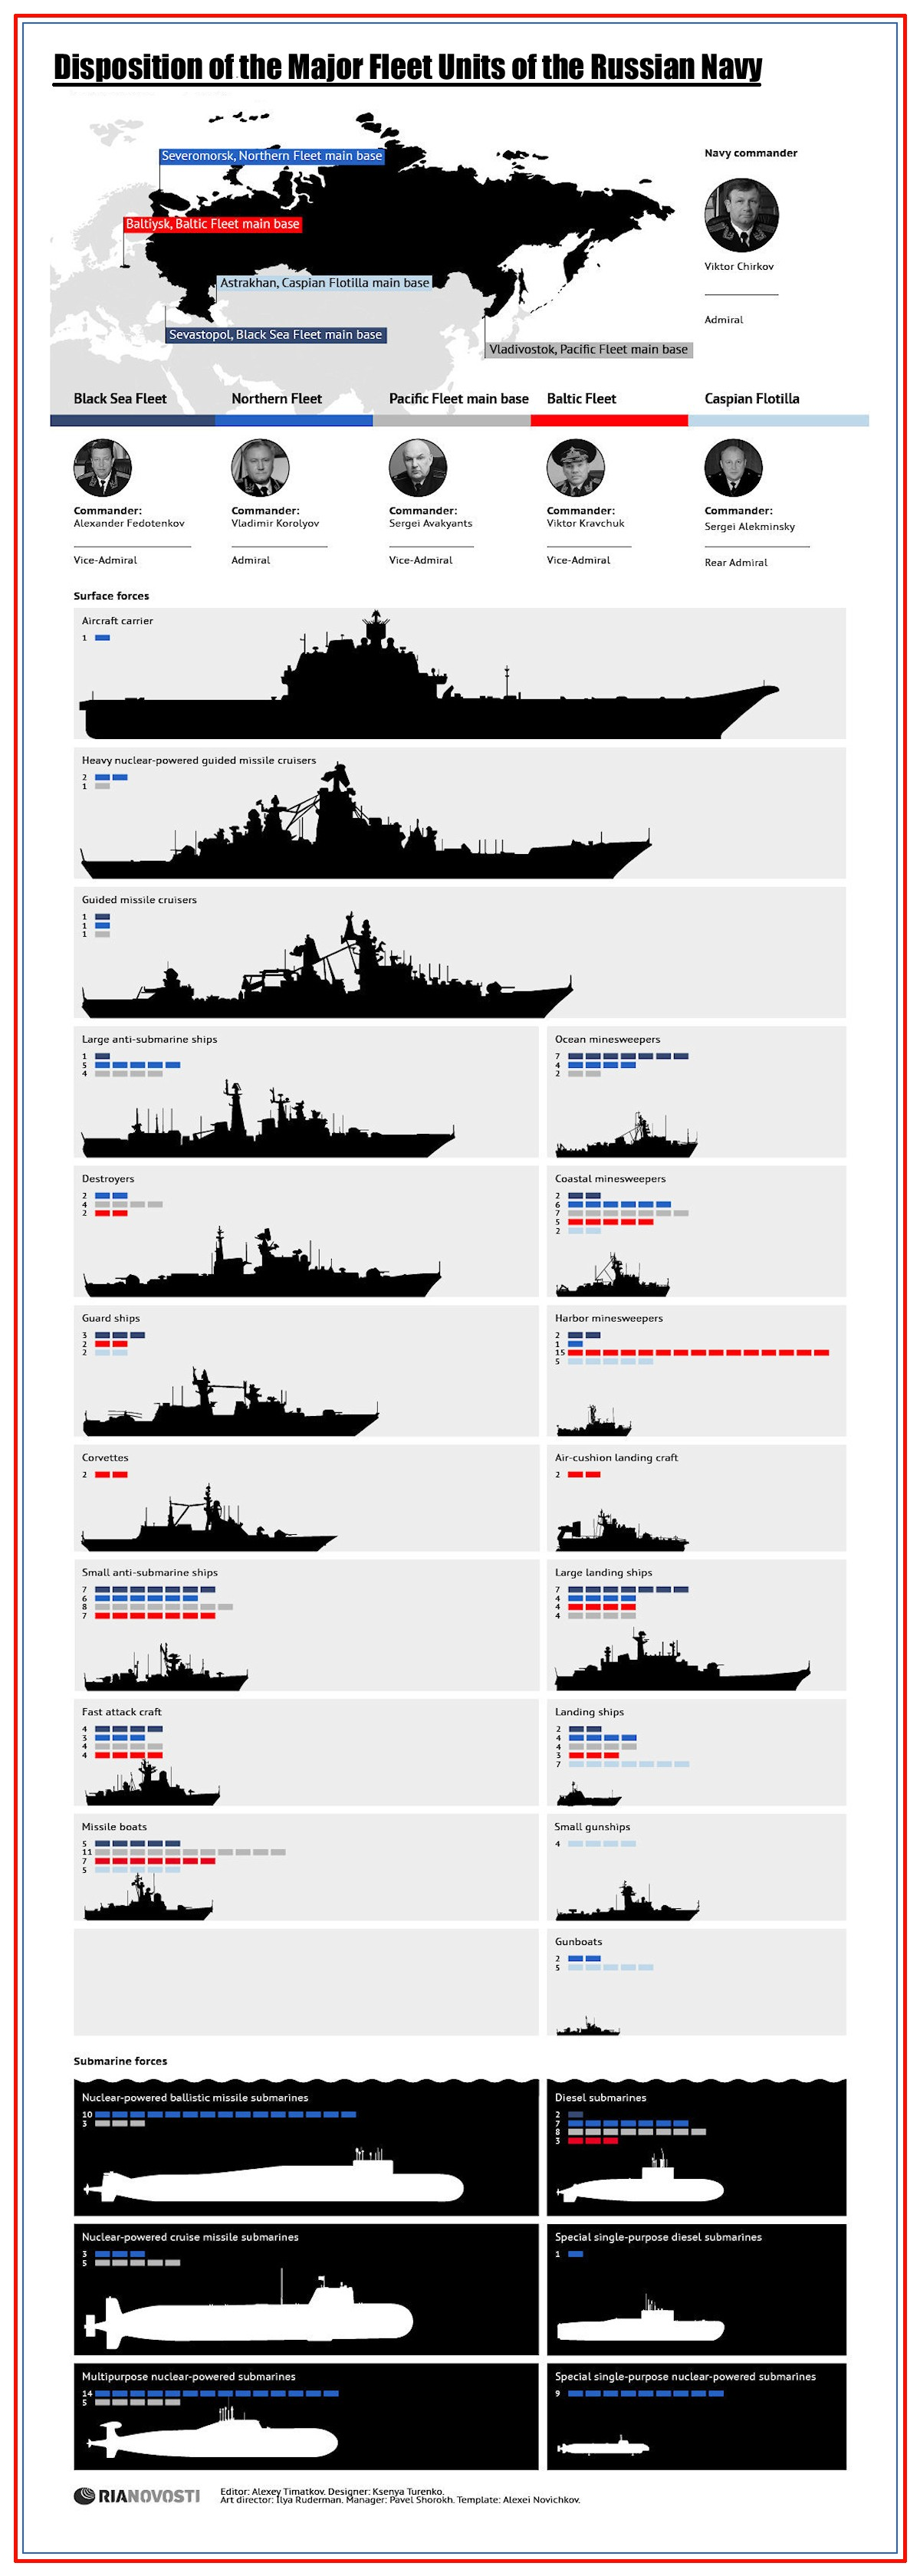 00 RIA-Novosti Infographics. Disposition of the Major Fleet Units of the Russian Navy. 2013